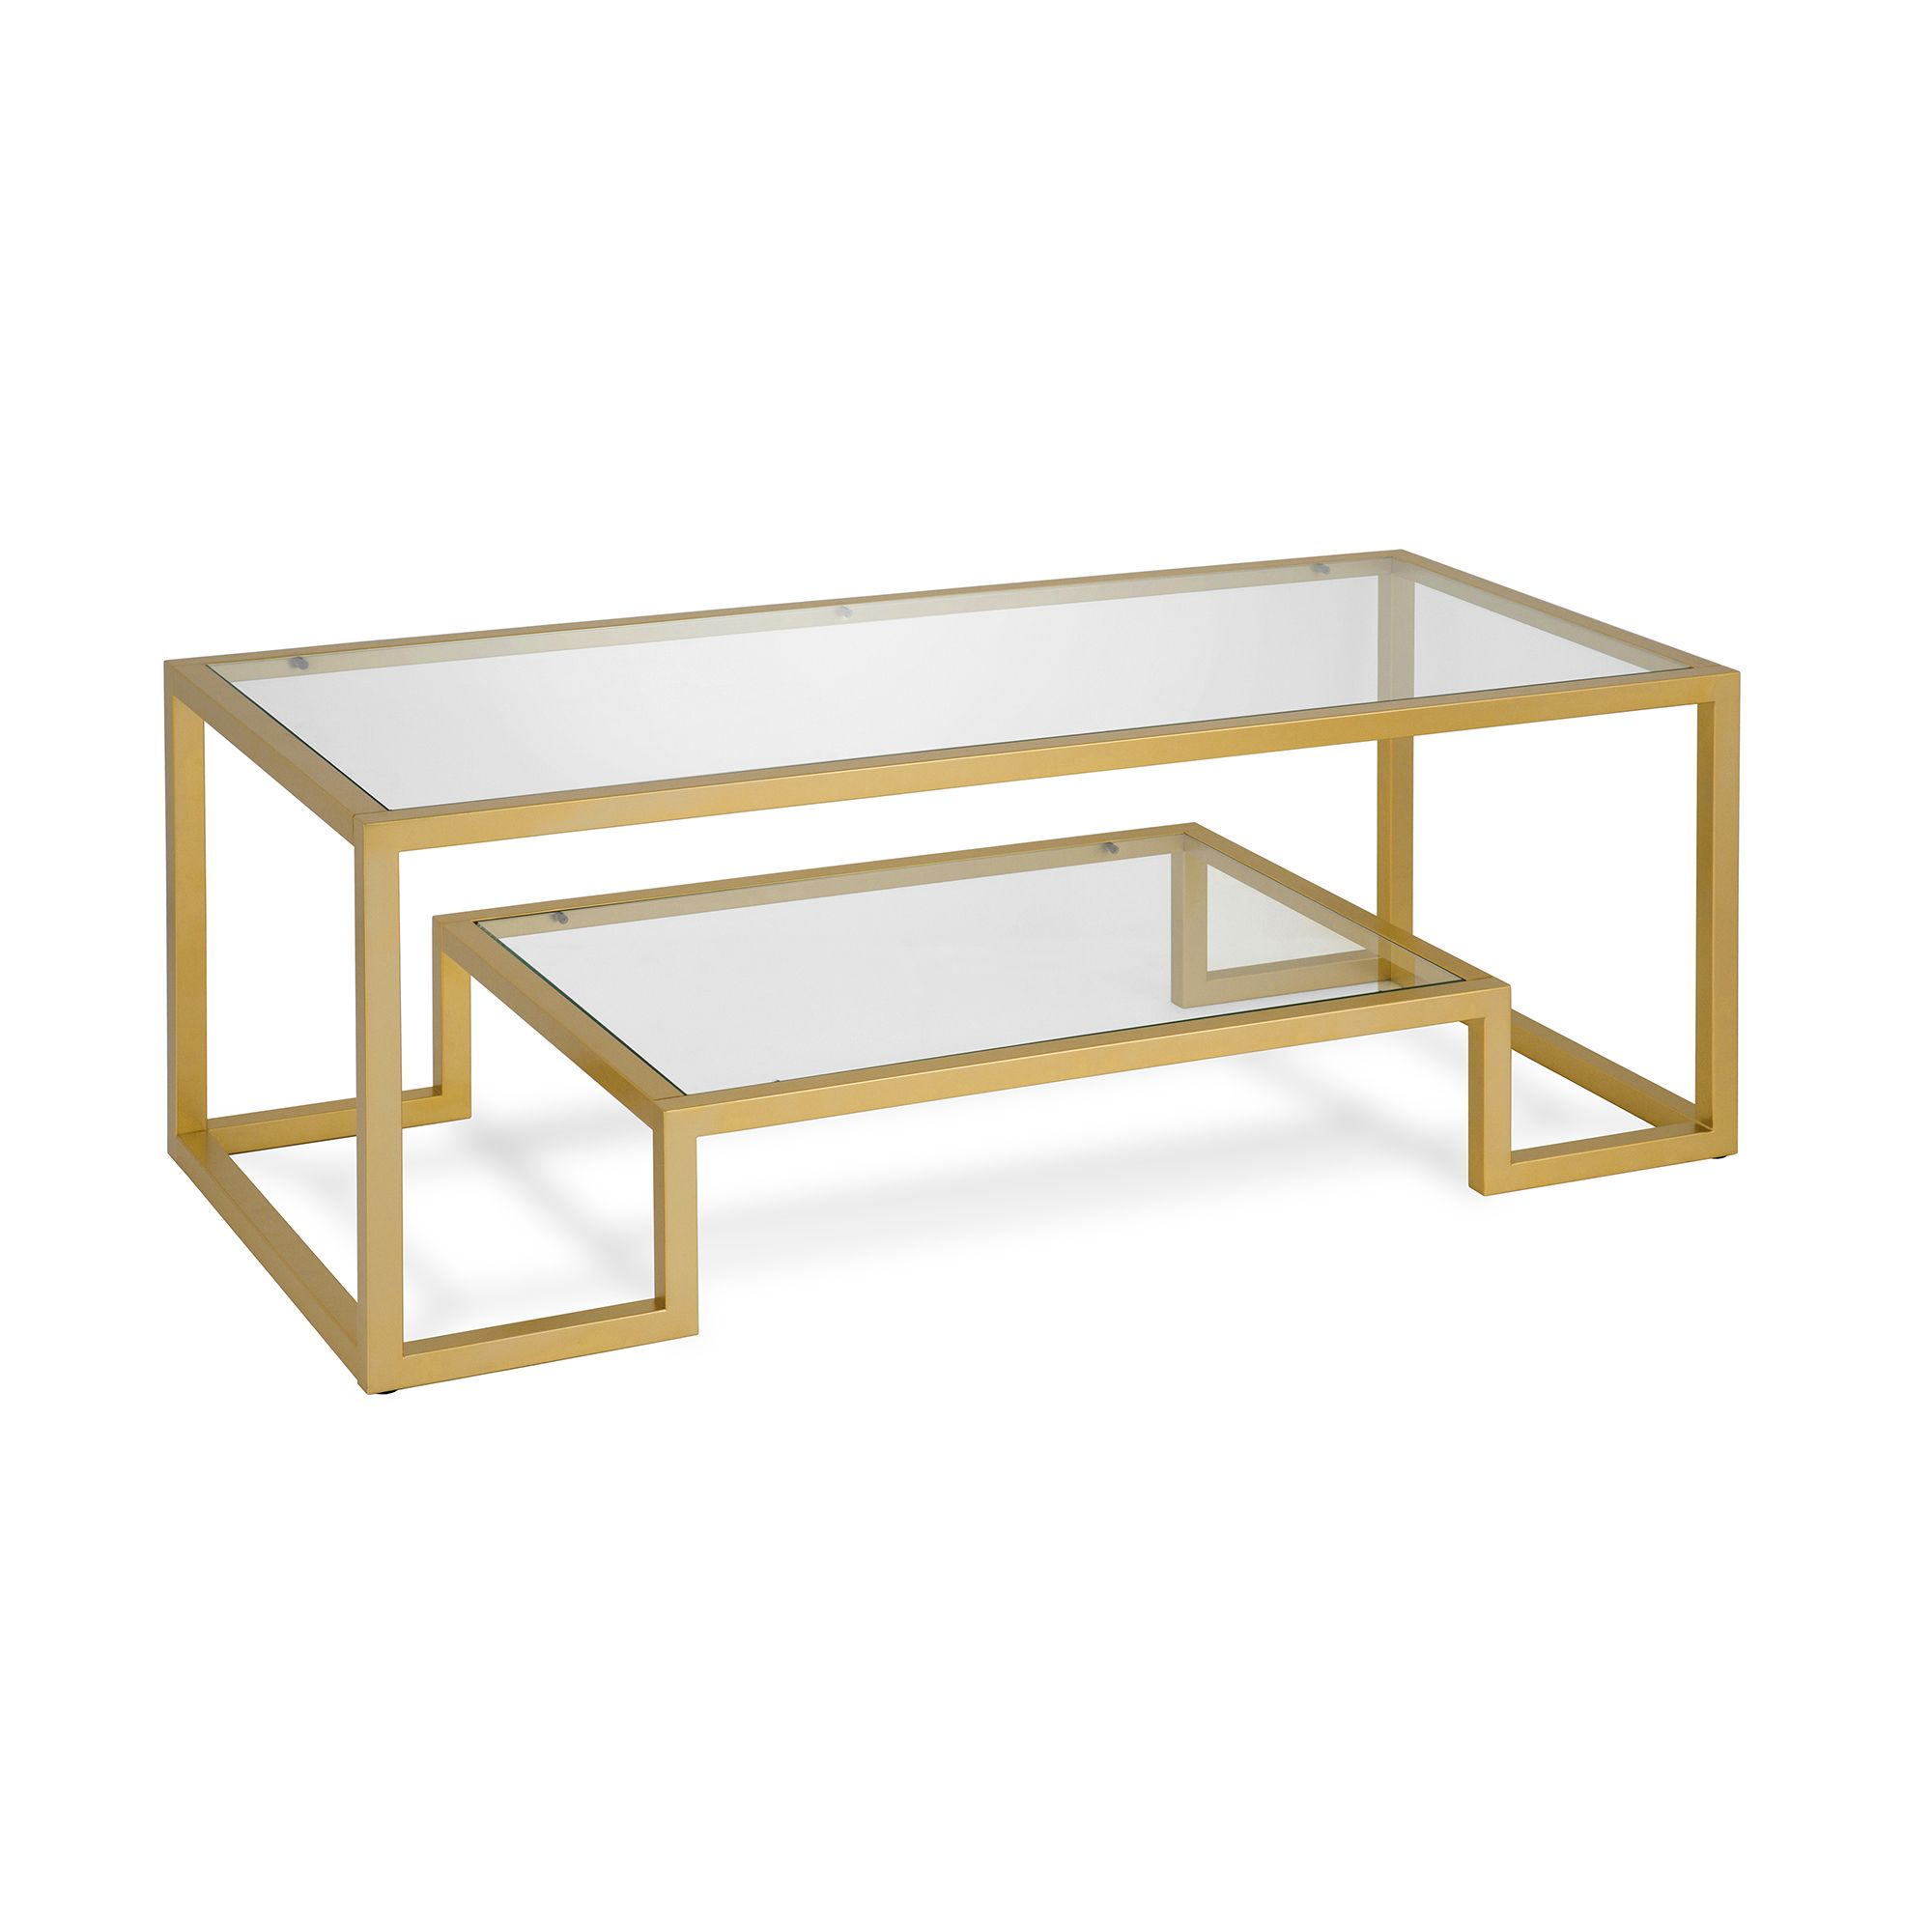 Evelyn Zoe Contemporary Coffee Table With Glass Top And Shelf Walmart Com In 2021 Gold Glass Coffee Table Geometric Coffee Table Coffee Table